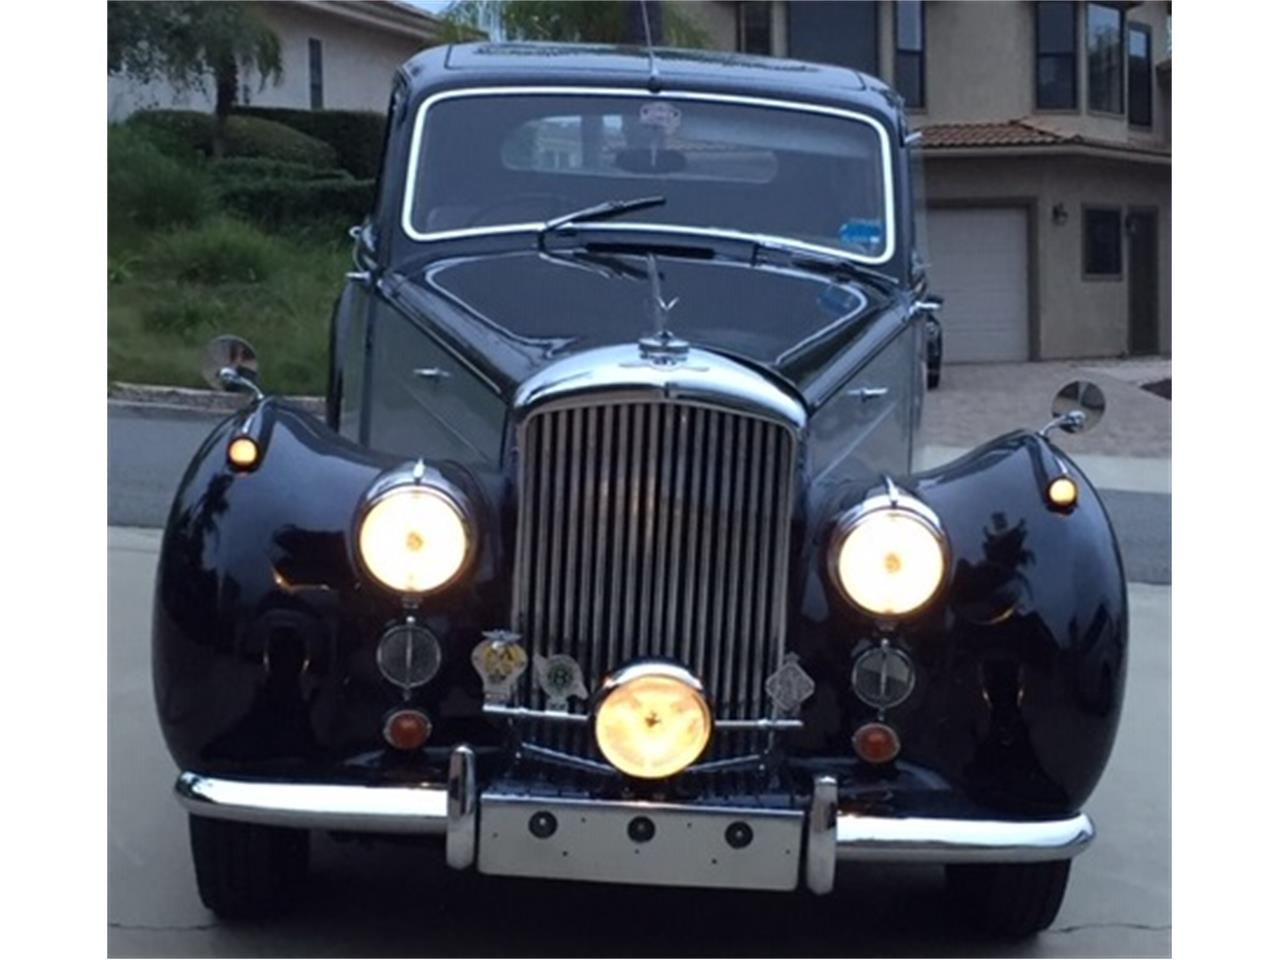 Large Picture of Classic 1950 Bentley Mark VI located in Canyon Lake California - $45,000.00 Offered by a Private Seller - Q4FX